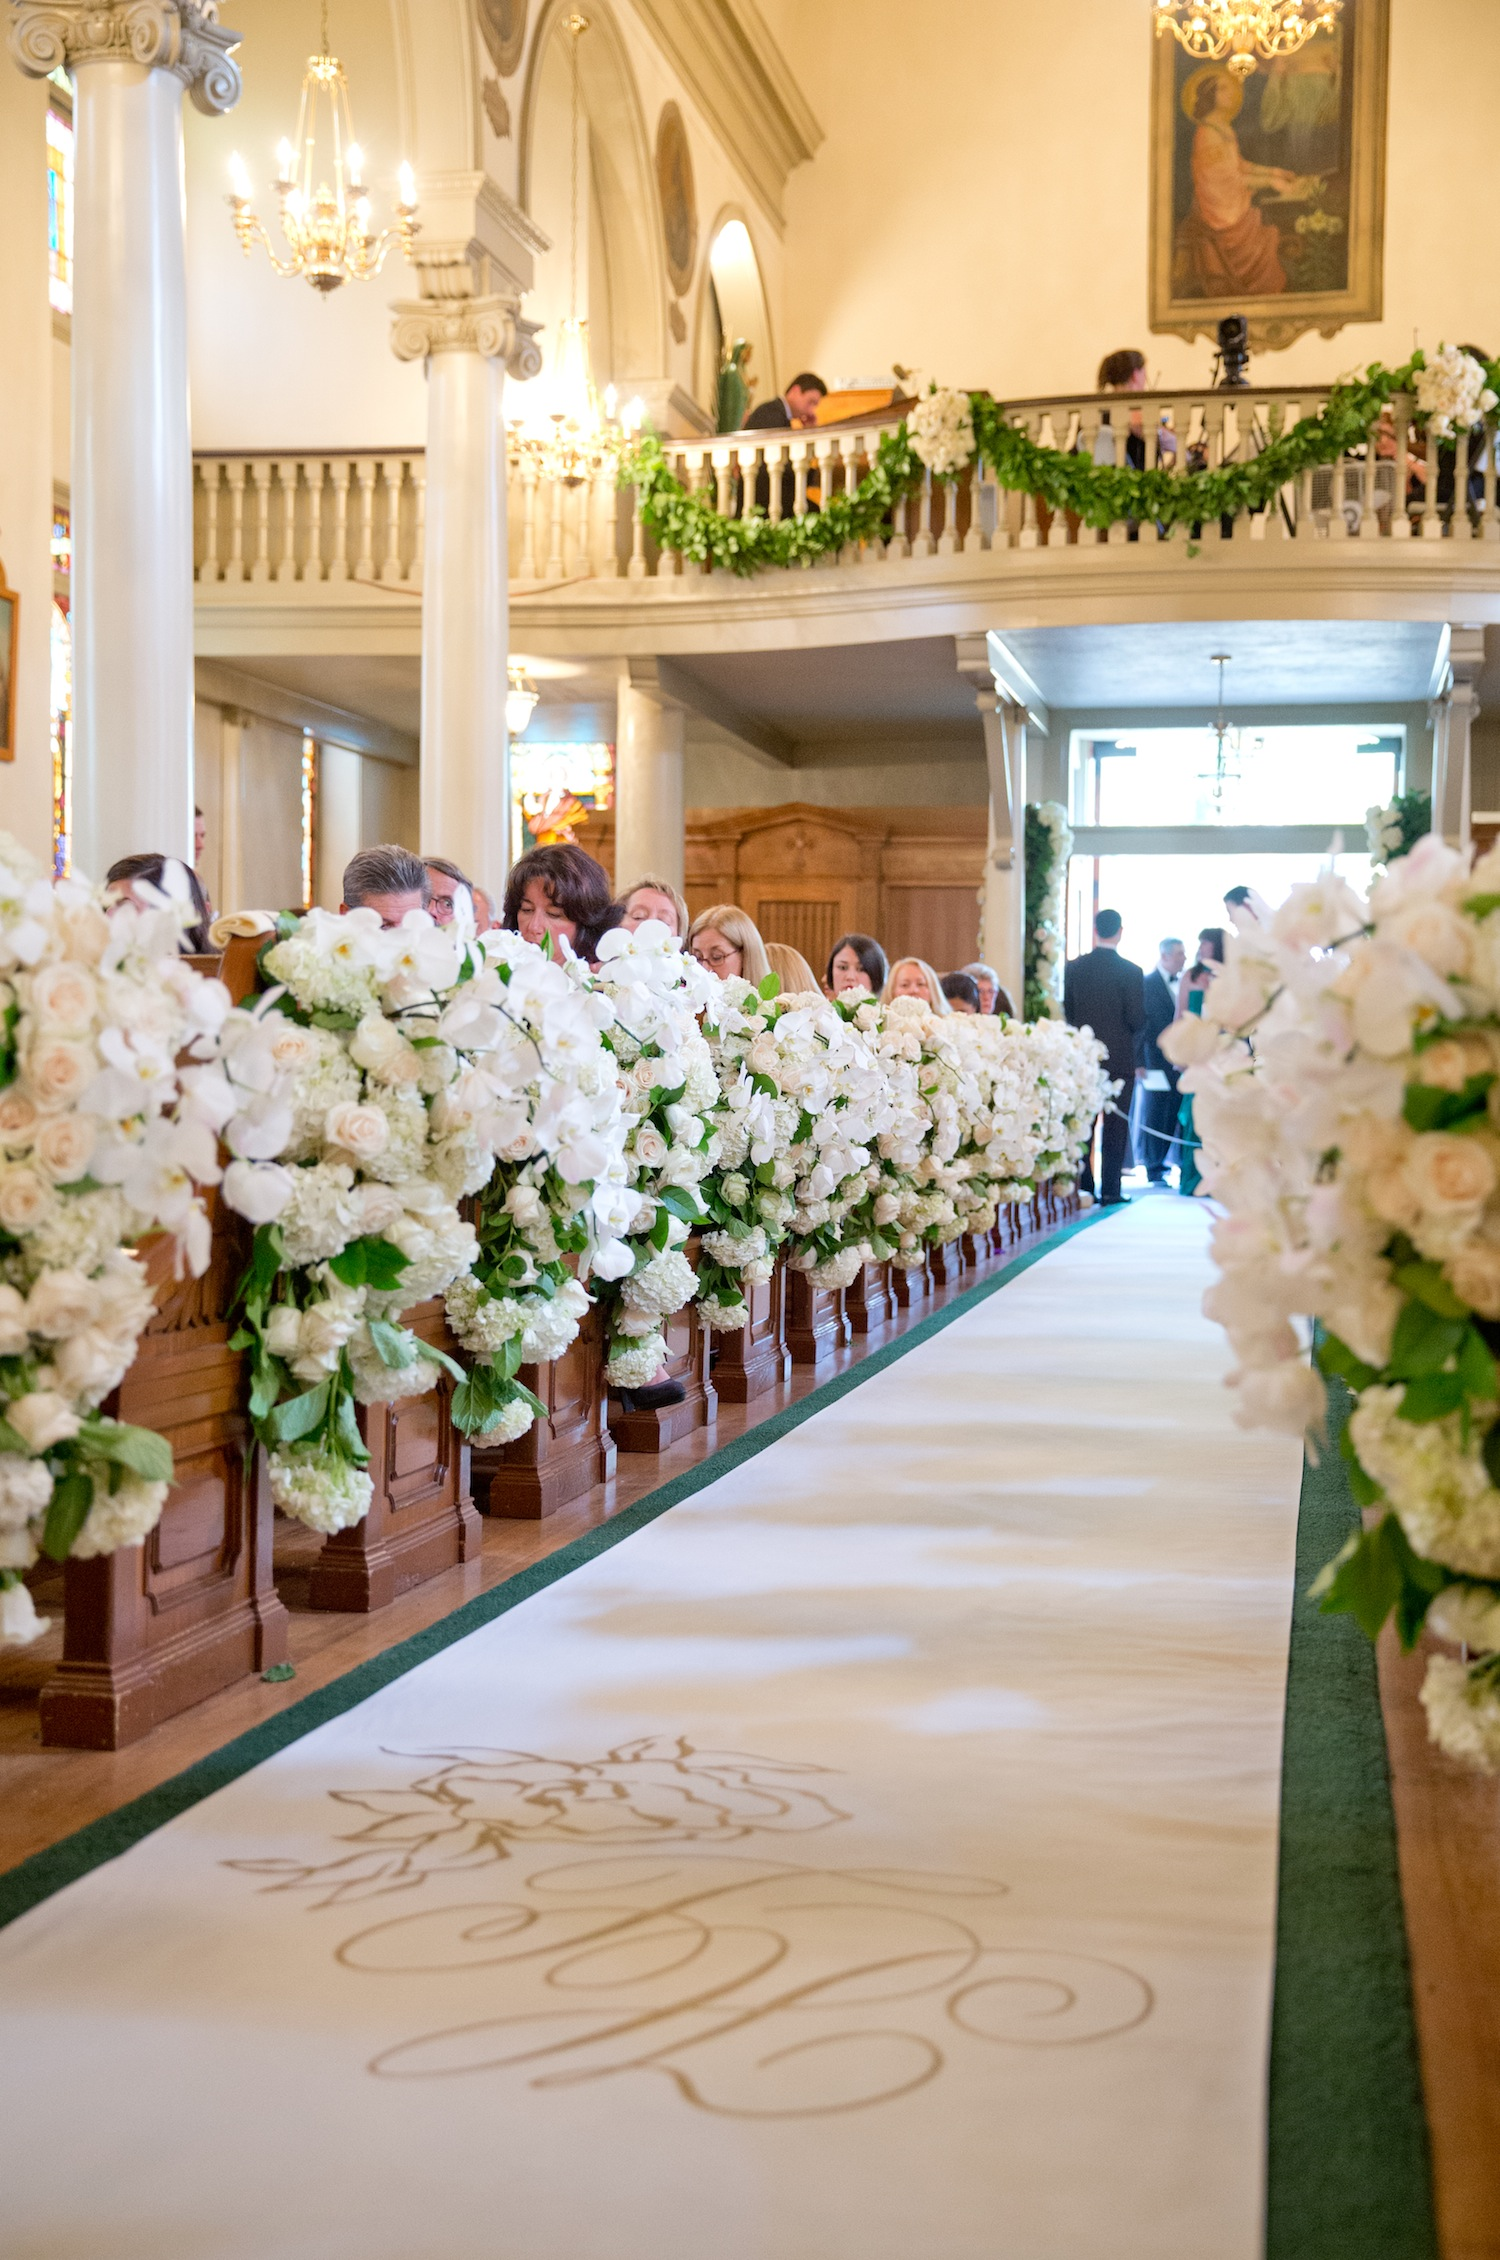 Wedding ceremony ideas 13 dcor ideas for a church wedding inside custom aisle runner and flowers at church wedding junglespirit Image collections